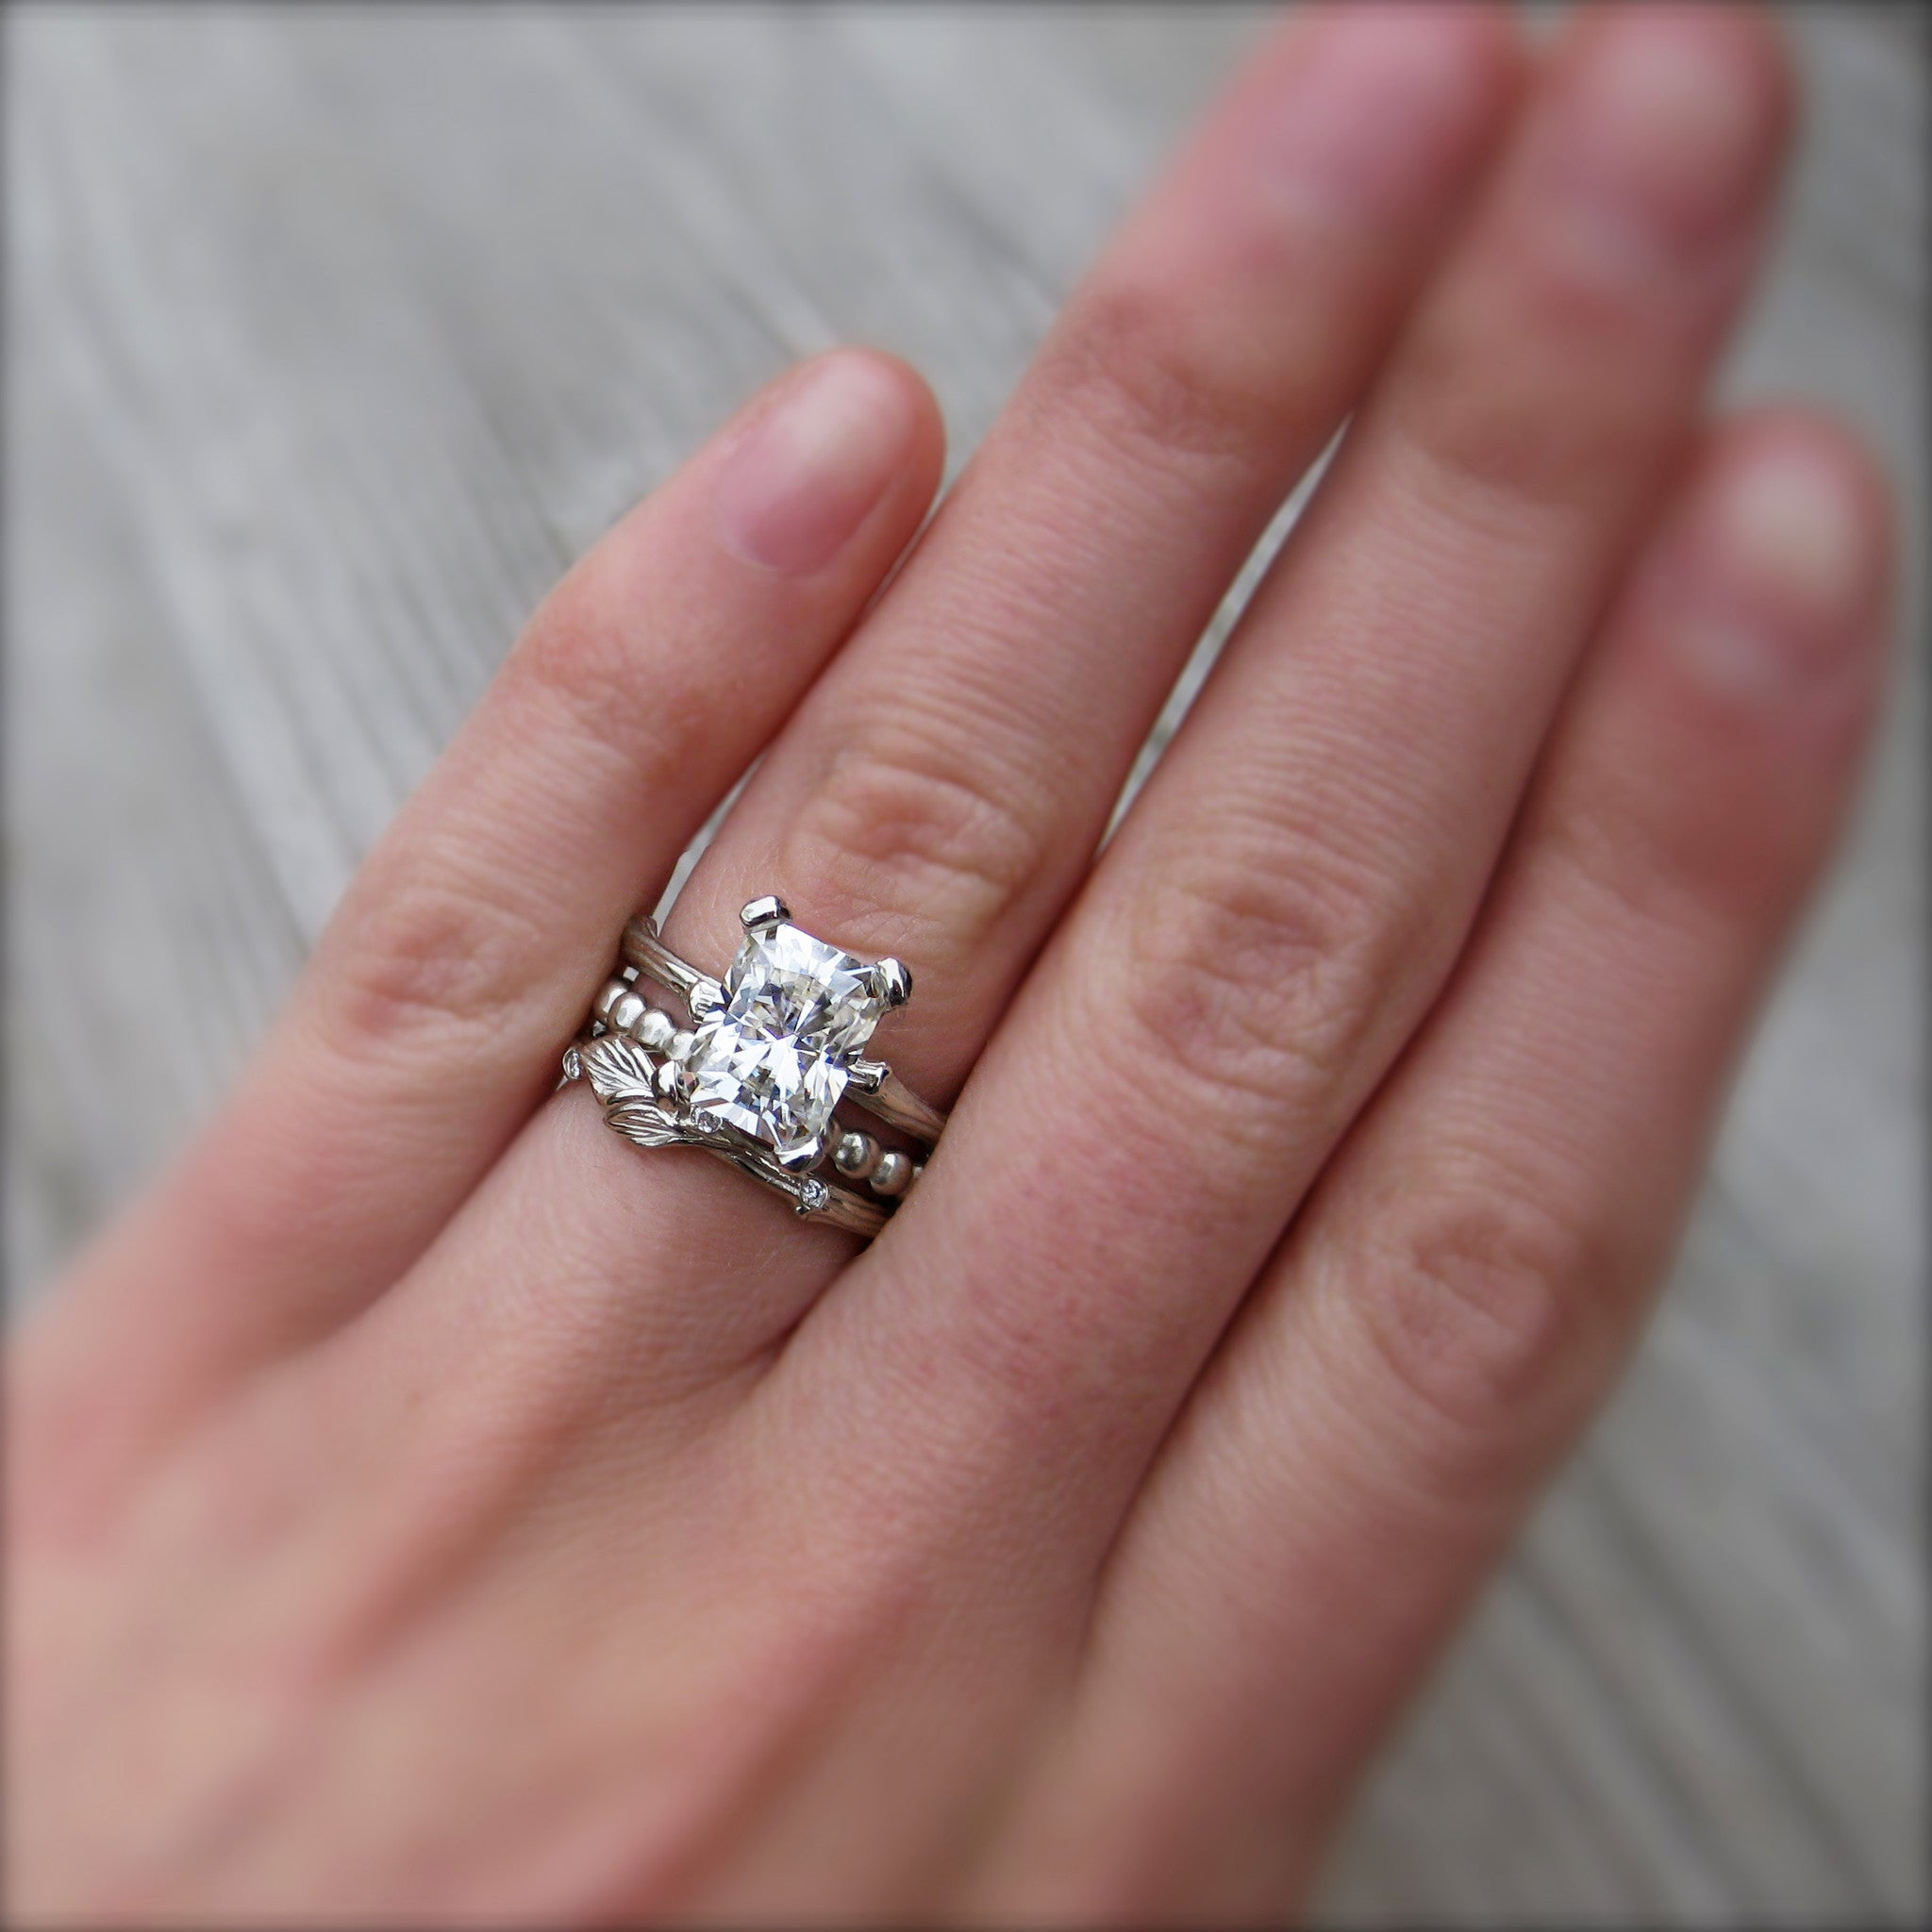 promise accent romie engagement with white and metals rosados options round gold diamond box jewelers available other stone fb love rings diamonds ring moissanite solitaire recycled